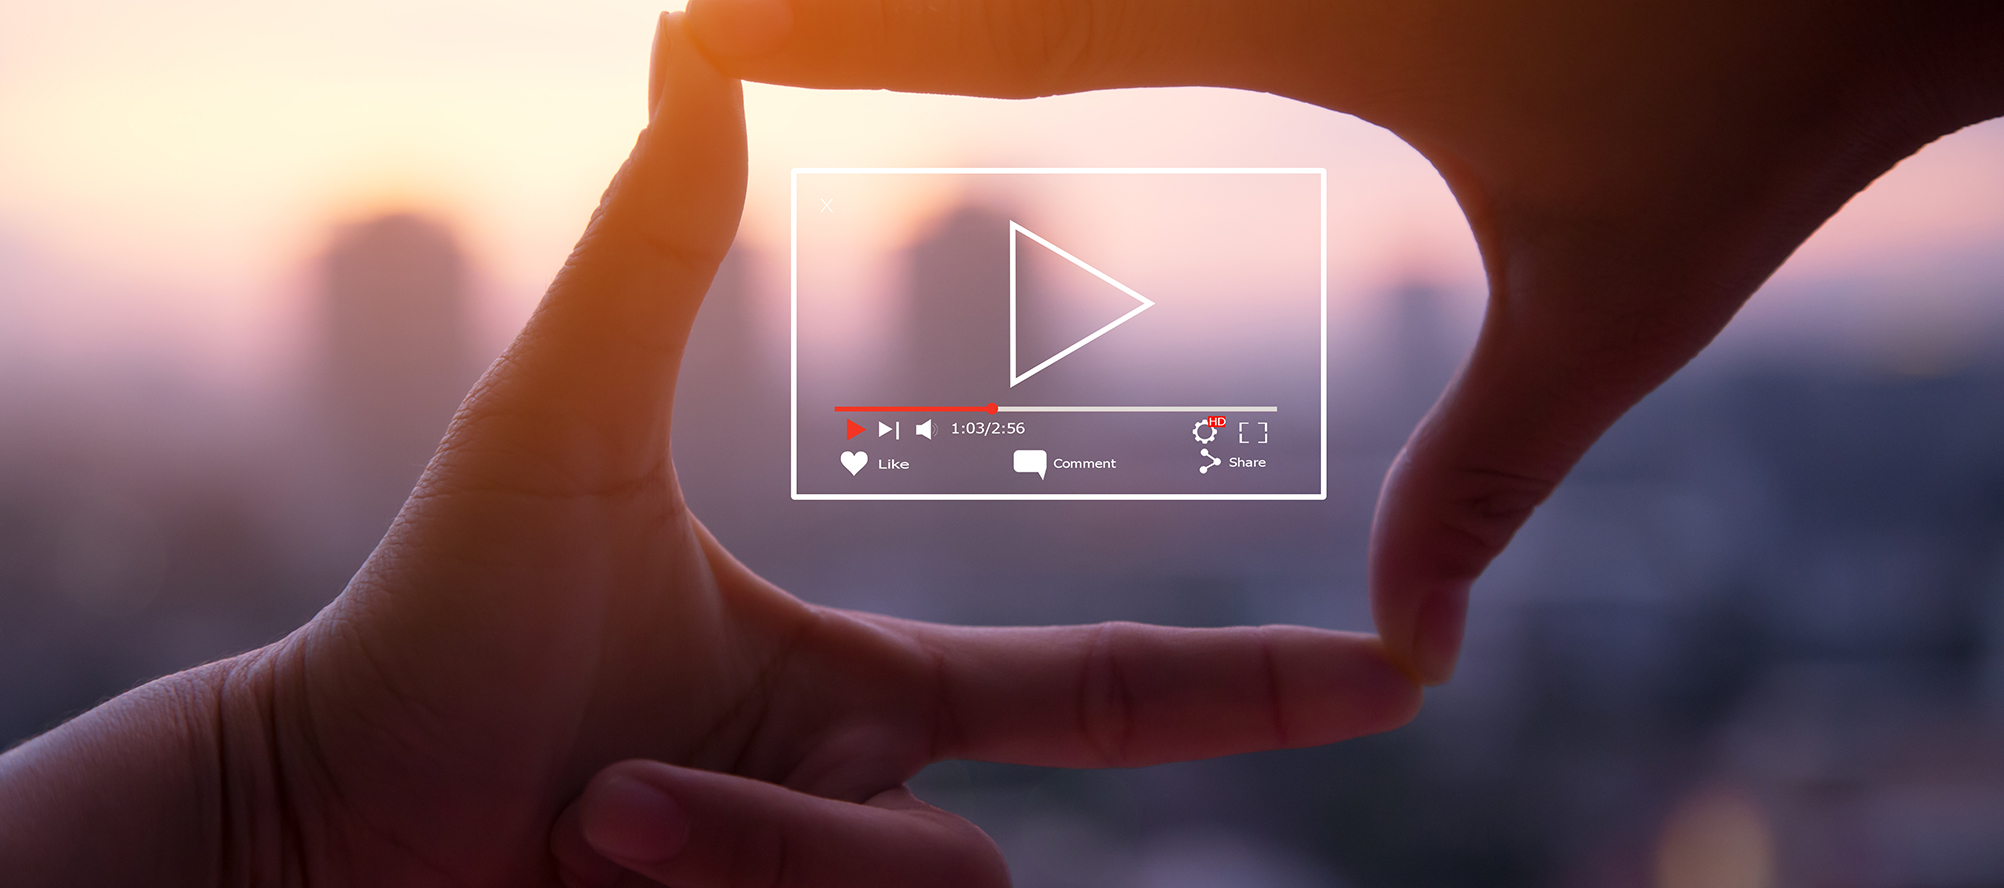 SSIMPLUS: The most accurate video quality measure